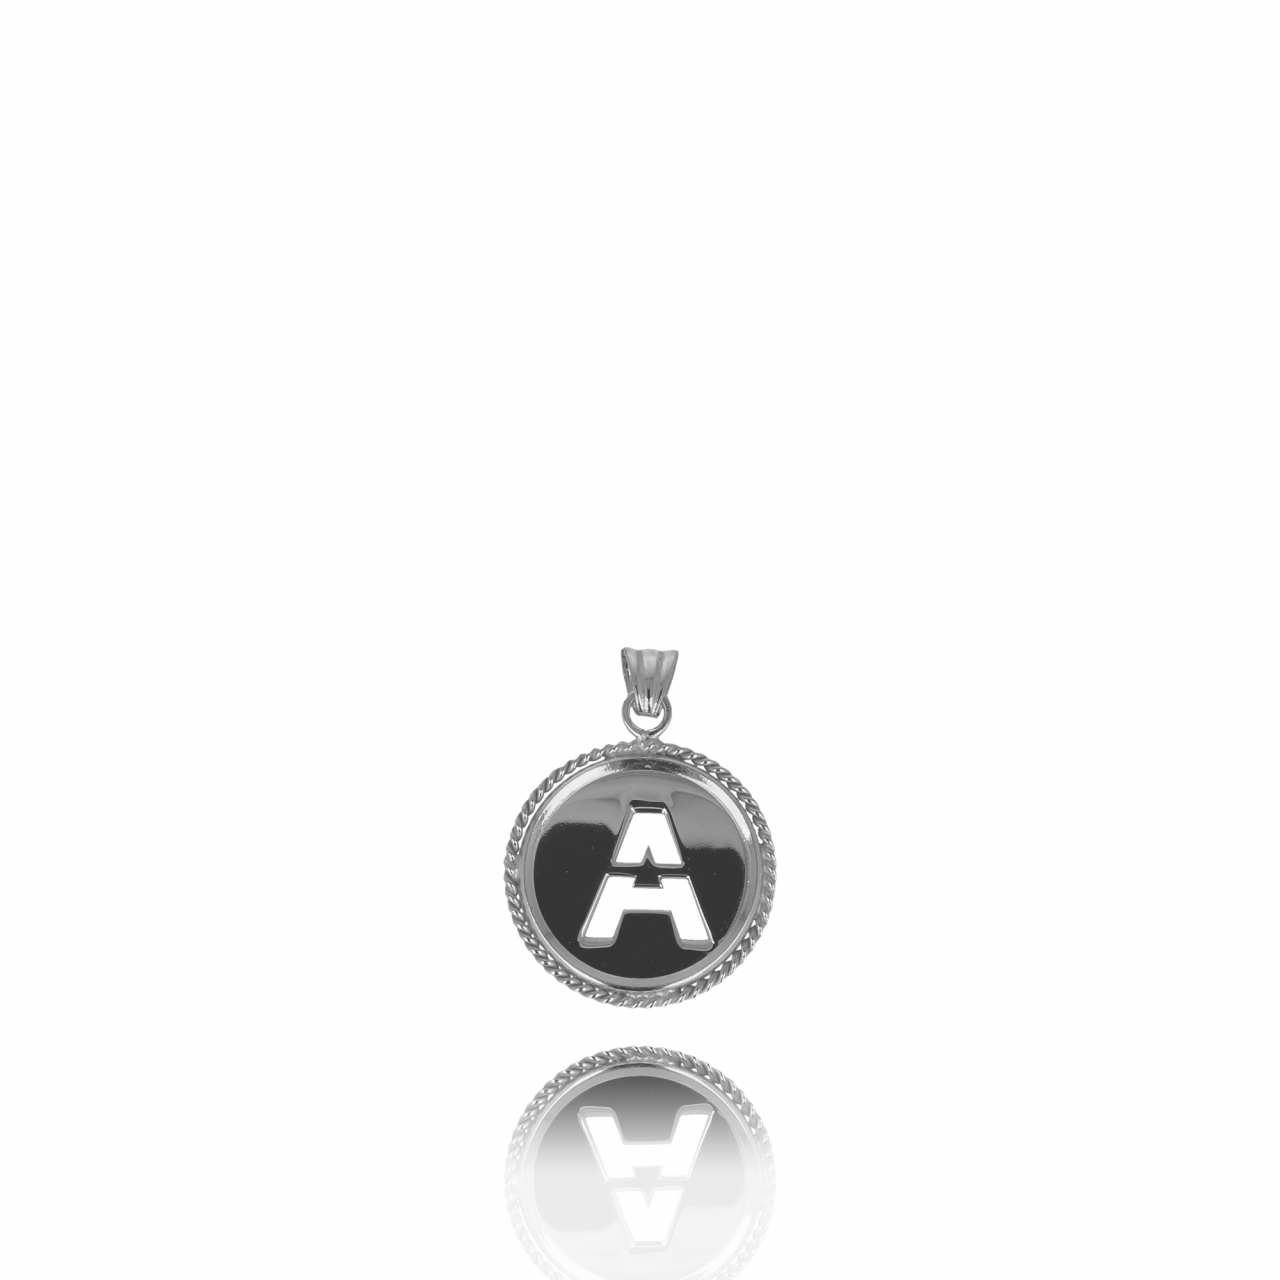 Silver Initial Medallion pendant